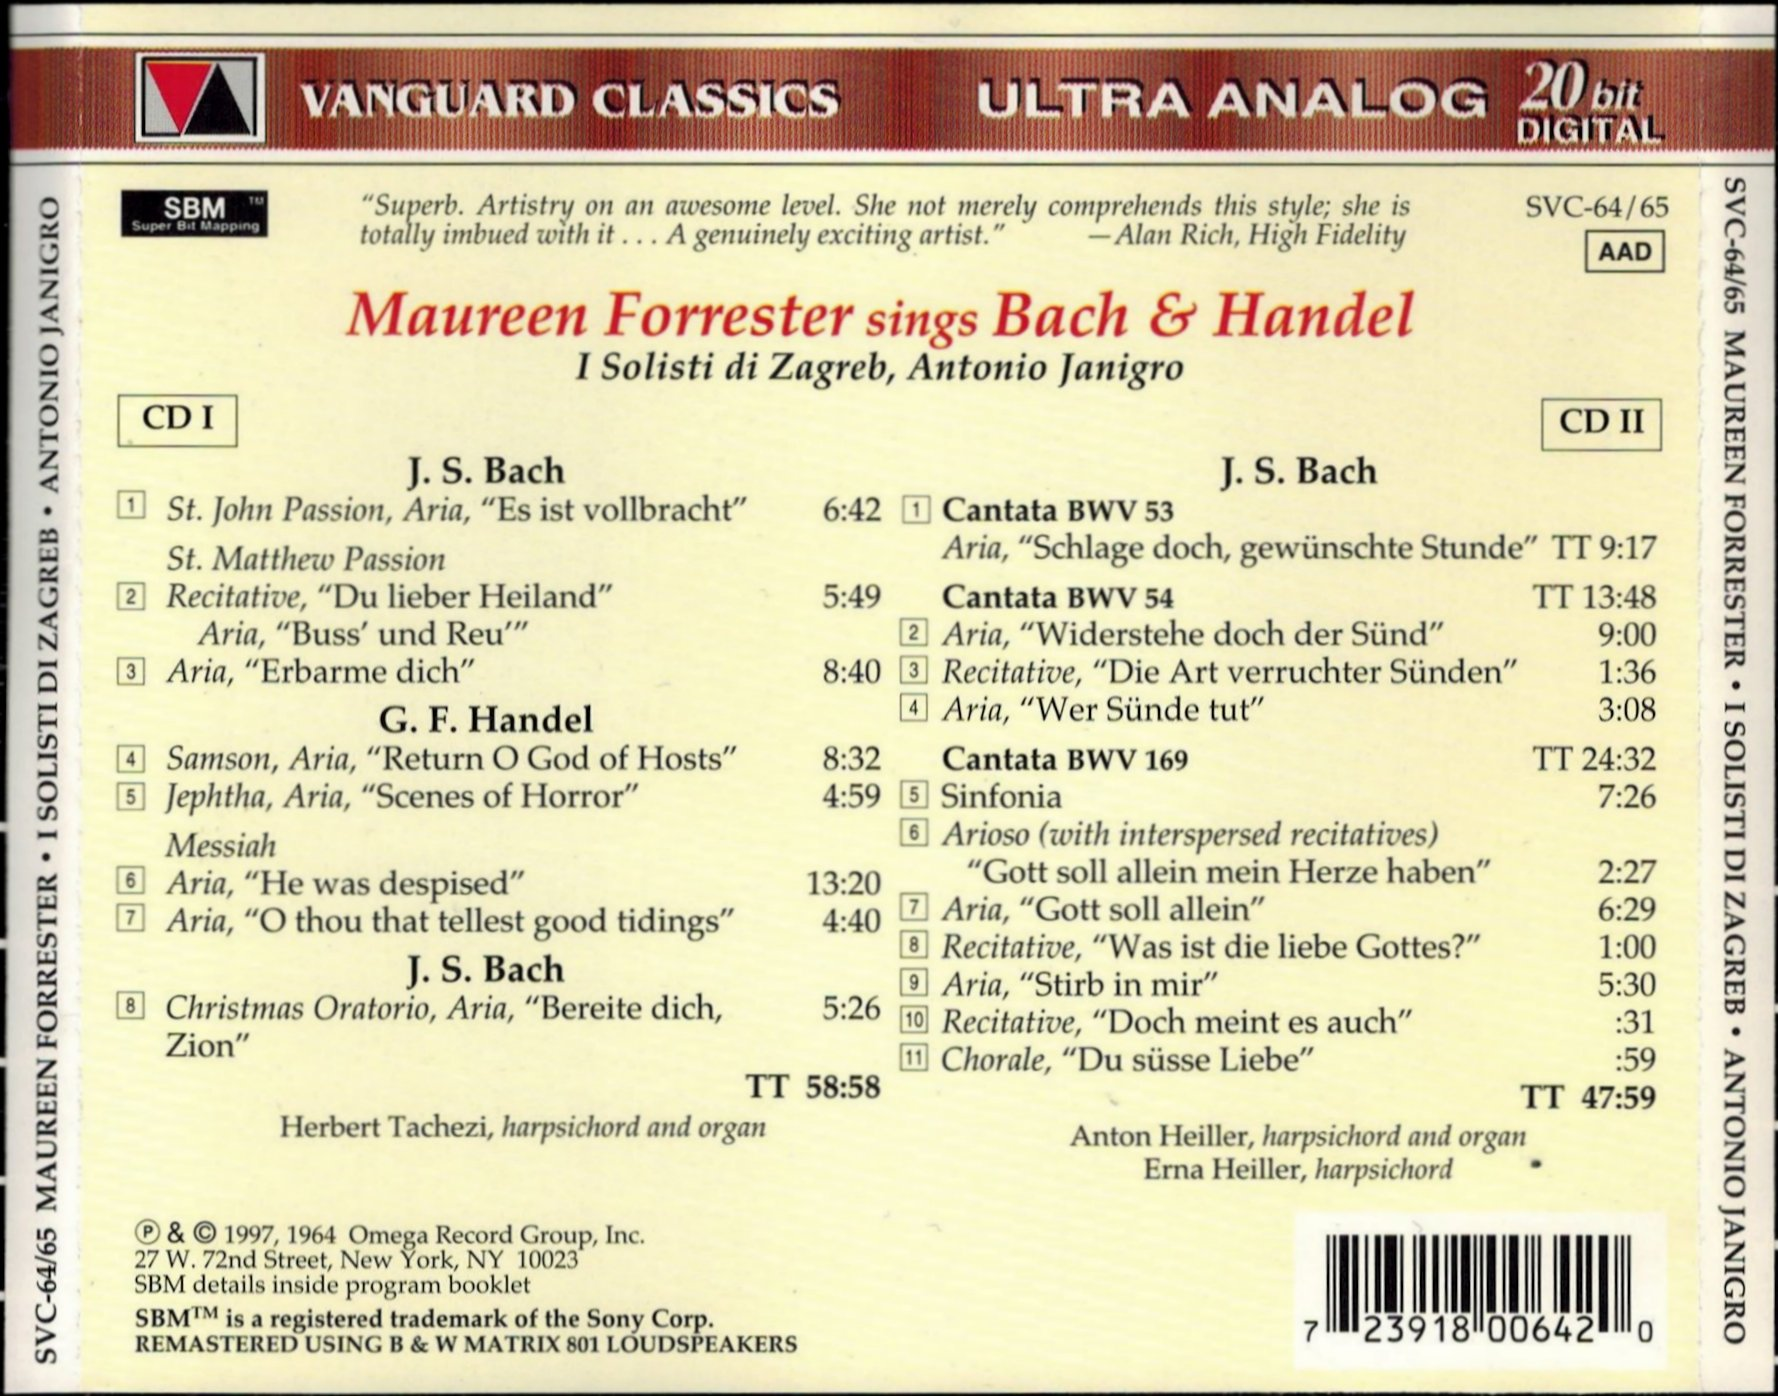 Cantata BWV 169 - Details & Discography Part 1: Complete Recordings